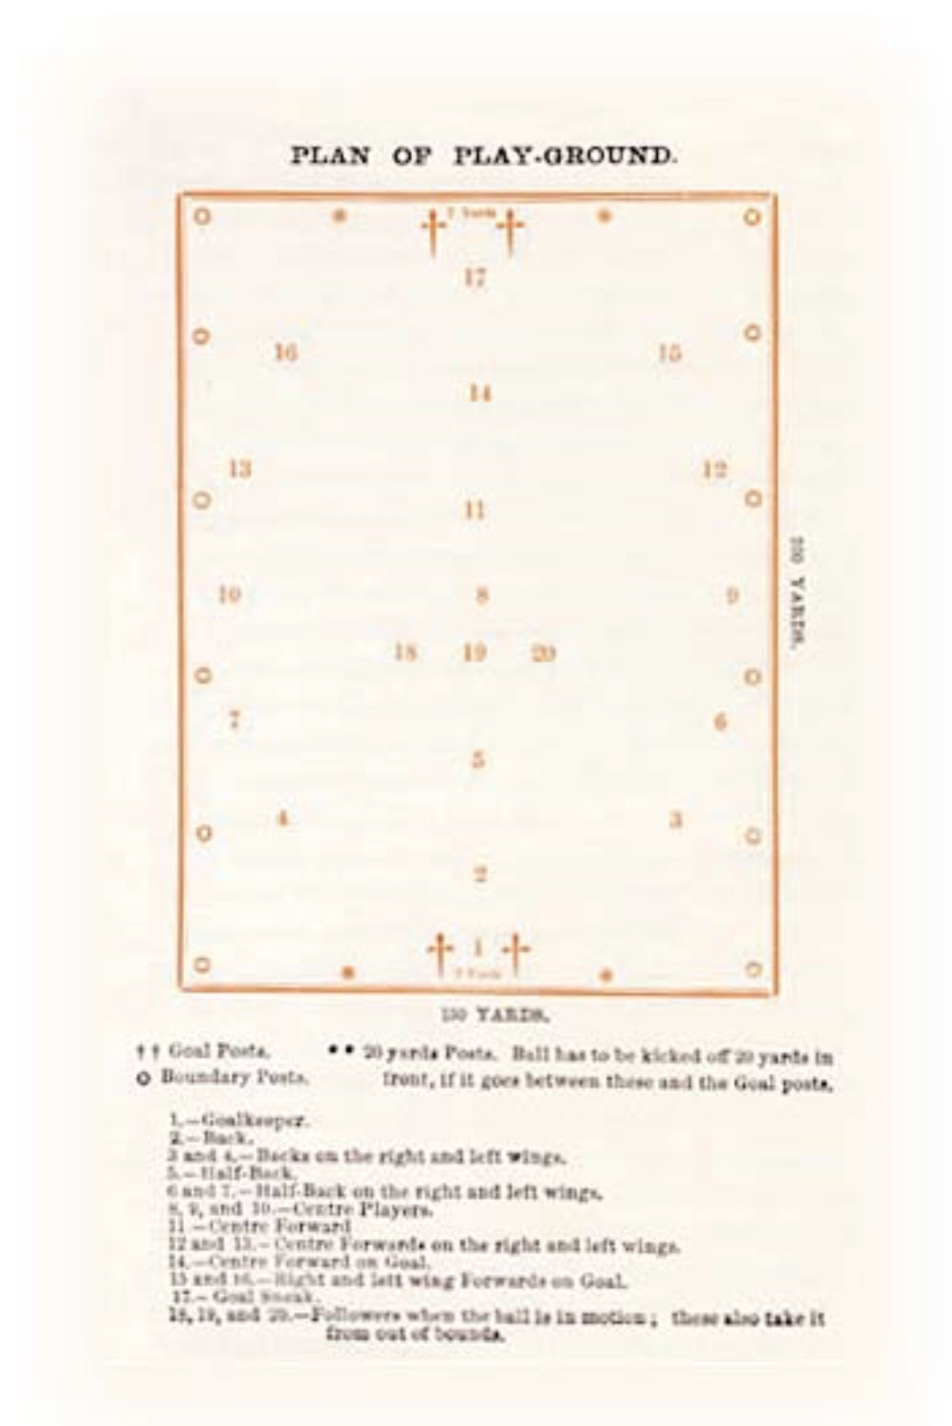 Diagram of an Australian Rules football pitch as published in The Footballer of 1880.